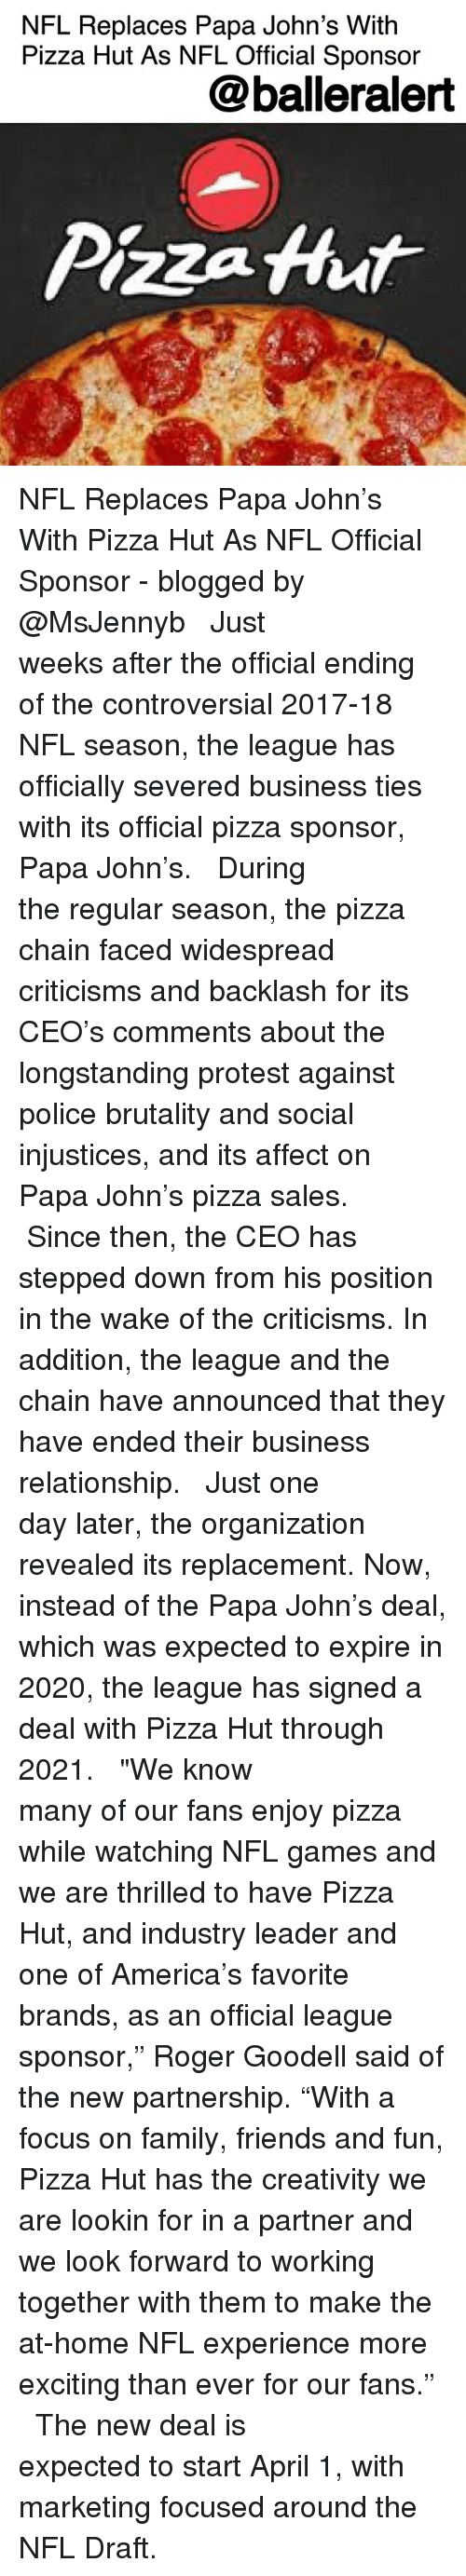 """America, Family, and Friends: NFL Replaces Papa John's With  Pizza Hut As NFL Official Sponsor  @balleralert  Pizza Hhut NFL Replaces Papa John's With Pizza Hut As NFL Official Sponsor - blogged by @MsJennyb ⠀⠀⠀⠀⠀⠀⠀ ⠀⠀⠀⠀⠀⠀⠀ Just weeks after the official ending of the controversial 2017-18 NFL season, the league has officially severed business ties with its official pizza sponsor, Papa John's. ⠀⠀⠀⠀⠀⠀⠀ ⠀⠀⠀⠀⠀⠀⠀ During the regular season, the pizza chain faced widespread criticisms and backlash for its CEO's comments about the longstanding protest against police brutality and social injustices, and its affect on Papa John's pizza sales. ⠀⠀⠀⠀⠀⠀⠀ ⠀⠀⠀⠀⠀⠀⠀ Since then, the CEO has stepped down from his position in the wake of the criticisms. In addition, the league and the chain have announced that they have ended their business relationship. ⠀⠀⠀⠀⠀⠀⠀ ⠀⠀⠀⠀⠀⠀⠀ Just one day later, the organization revealed its replacement. Now, instead of the Papa John's deal, which was expected to expire in 2020, the league has signed a deal with Pizza Hut through 2021. ⠀⠀⠀⠀⠀⠀⠀ ⠀⠀⠀⠀⠀⠀⠀ """"We know many of our fans enjoy pizza while watching NFL games and we are thrilled to have Pizza Hut, and industry leader and one of America's favorite brands, as an official league sponsor,"""" Roger Goodell said of the new partnership. """"With a focus on family, friends and fun, Pizza Hut has the creativity we are lookin for in a partner and we look forward to working together with them to make the at-home NFL experience more exciting than ever for our fans."""" ⠀⠀⠀⠀⠀⠀⠀ ⠀⠀⠀⠀⠀⠀⠀ The new deal is expected to start April 1, with marketing focused around the NFL Draft."""